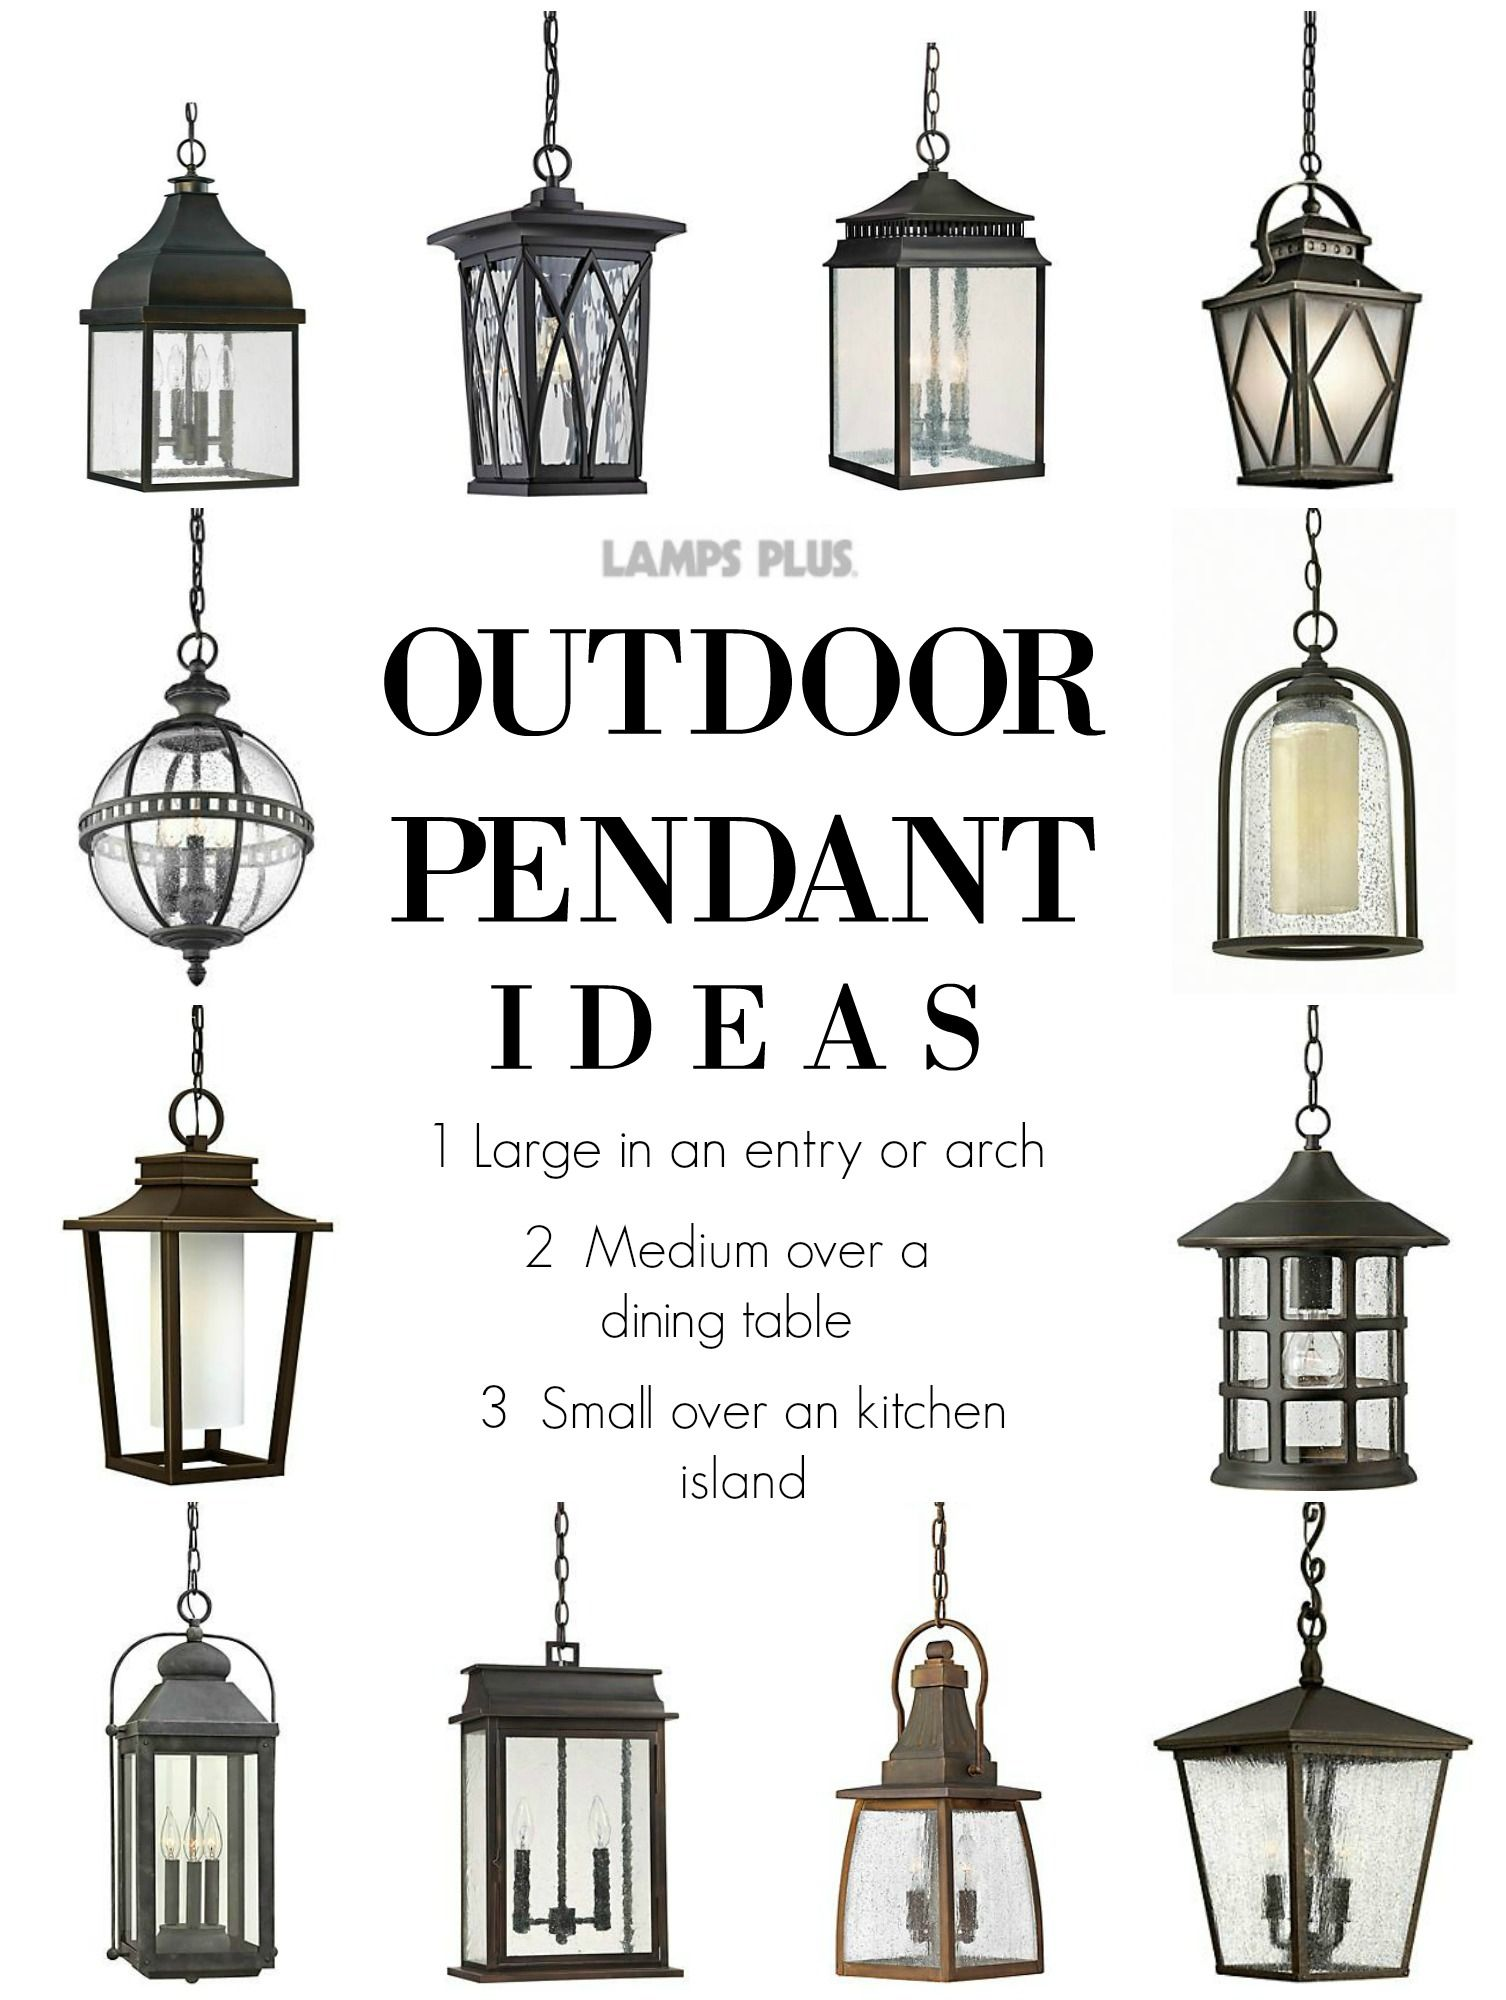 Outdoor Lighting Pendant Ideas From Lampsplus